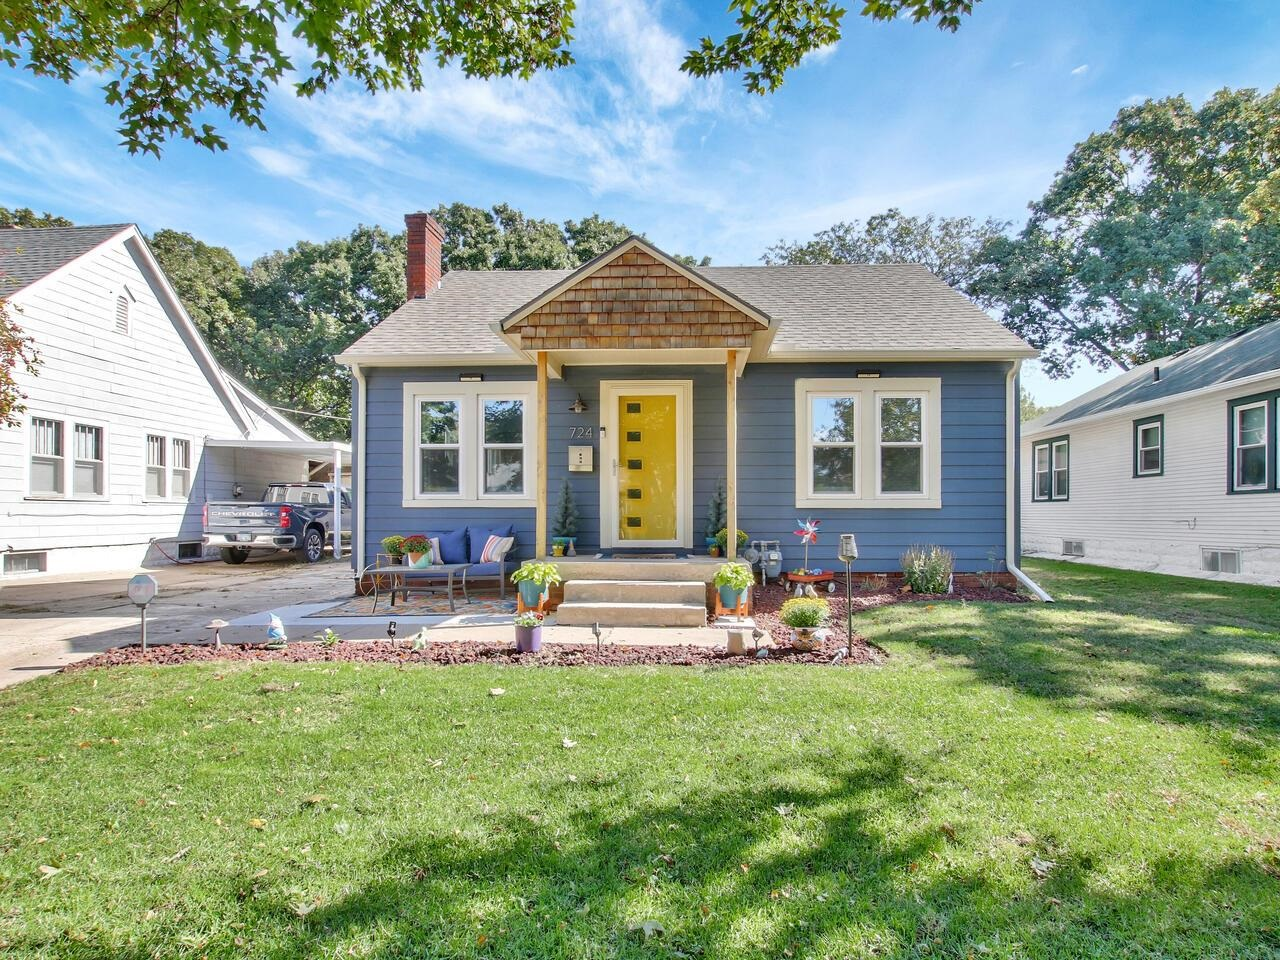 Welcome to your new home! This 3 bedroom, 1 bath, 1 car garage home has been wonderfully improved up